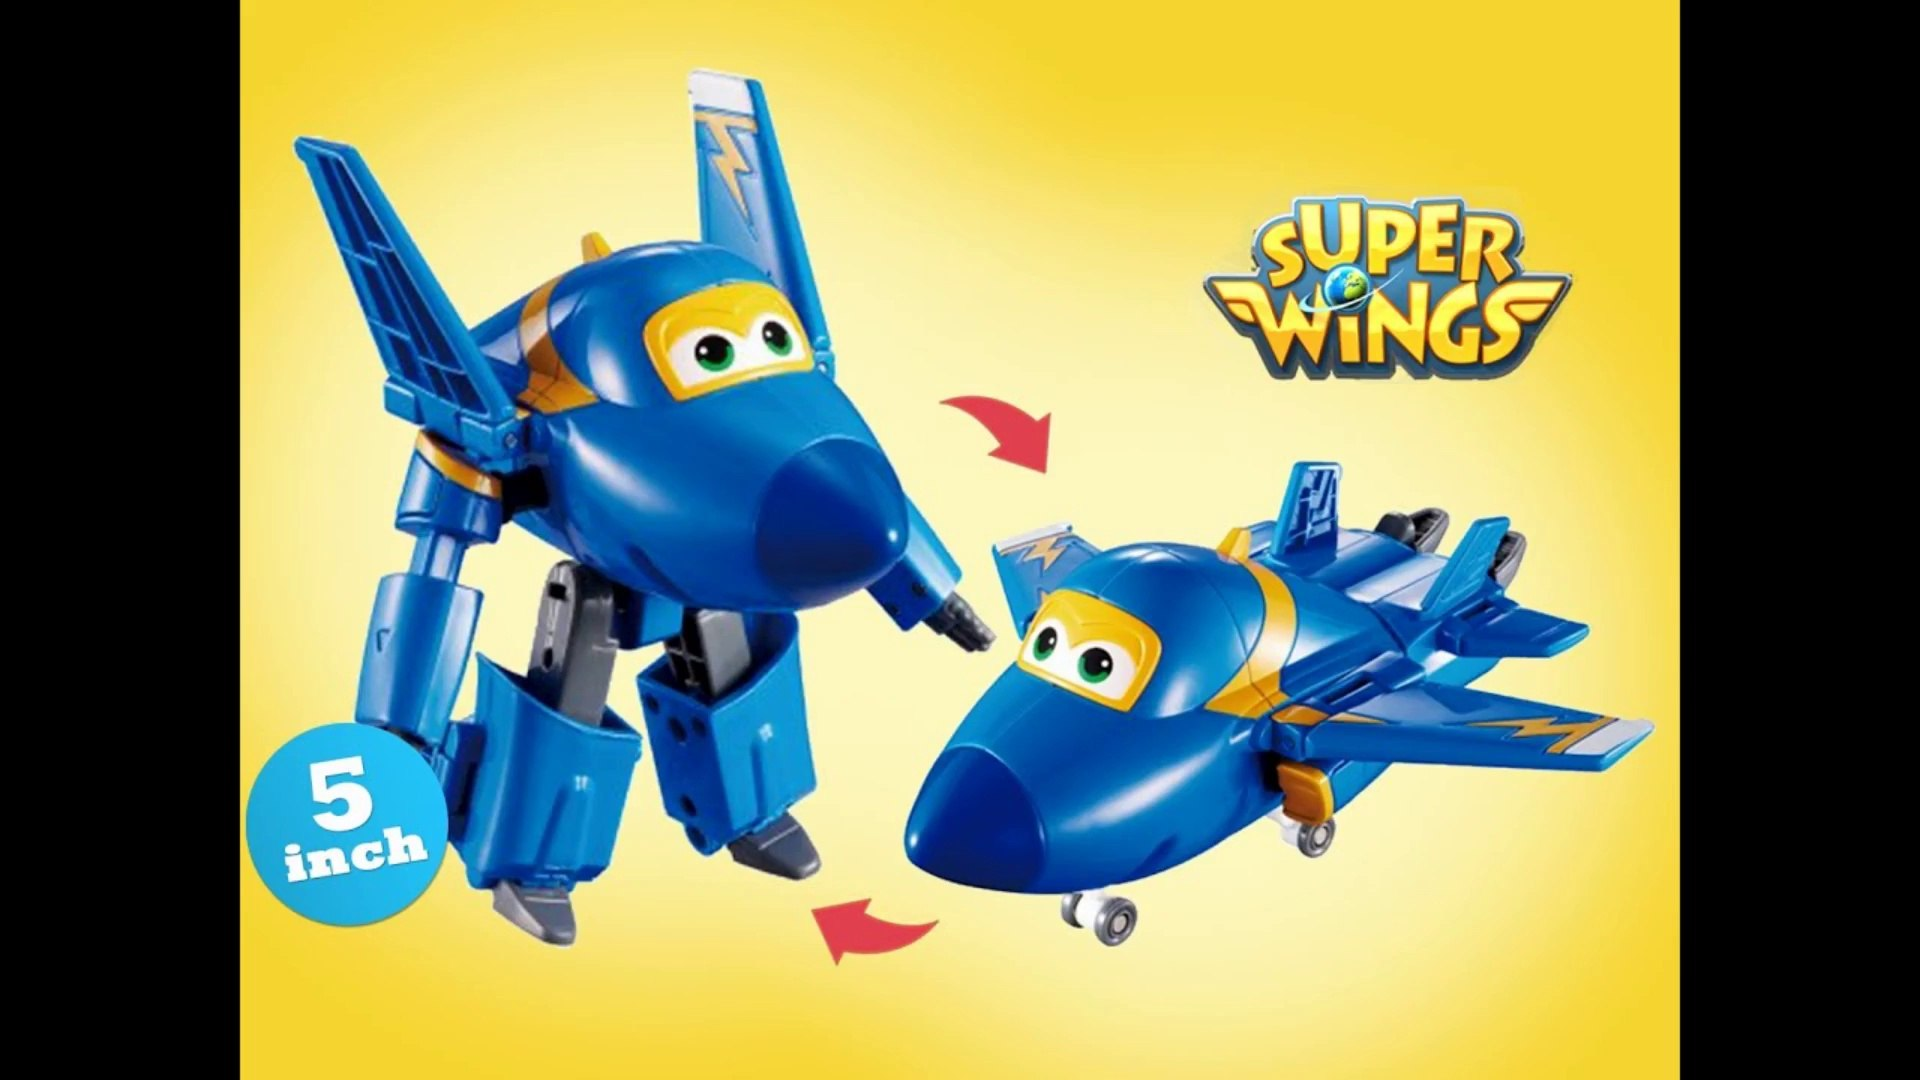 Super Wings Jerome Transforming Robot Airplane 5 inch 출동슈퍼윙스 신제품 장난감 - Unboxing Demo Review